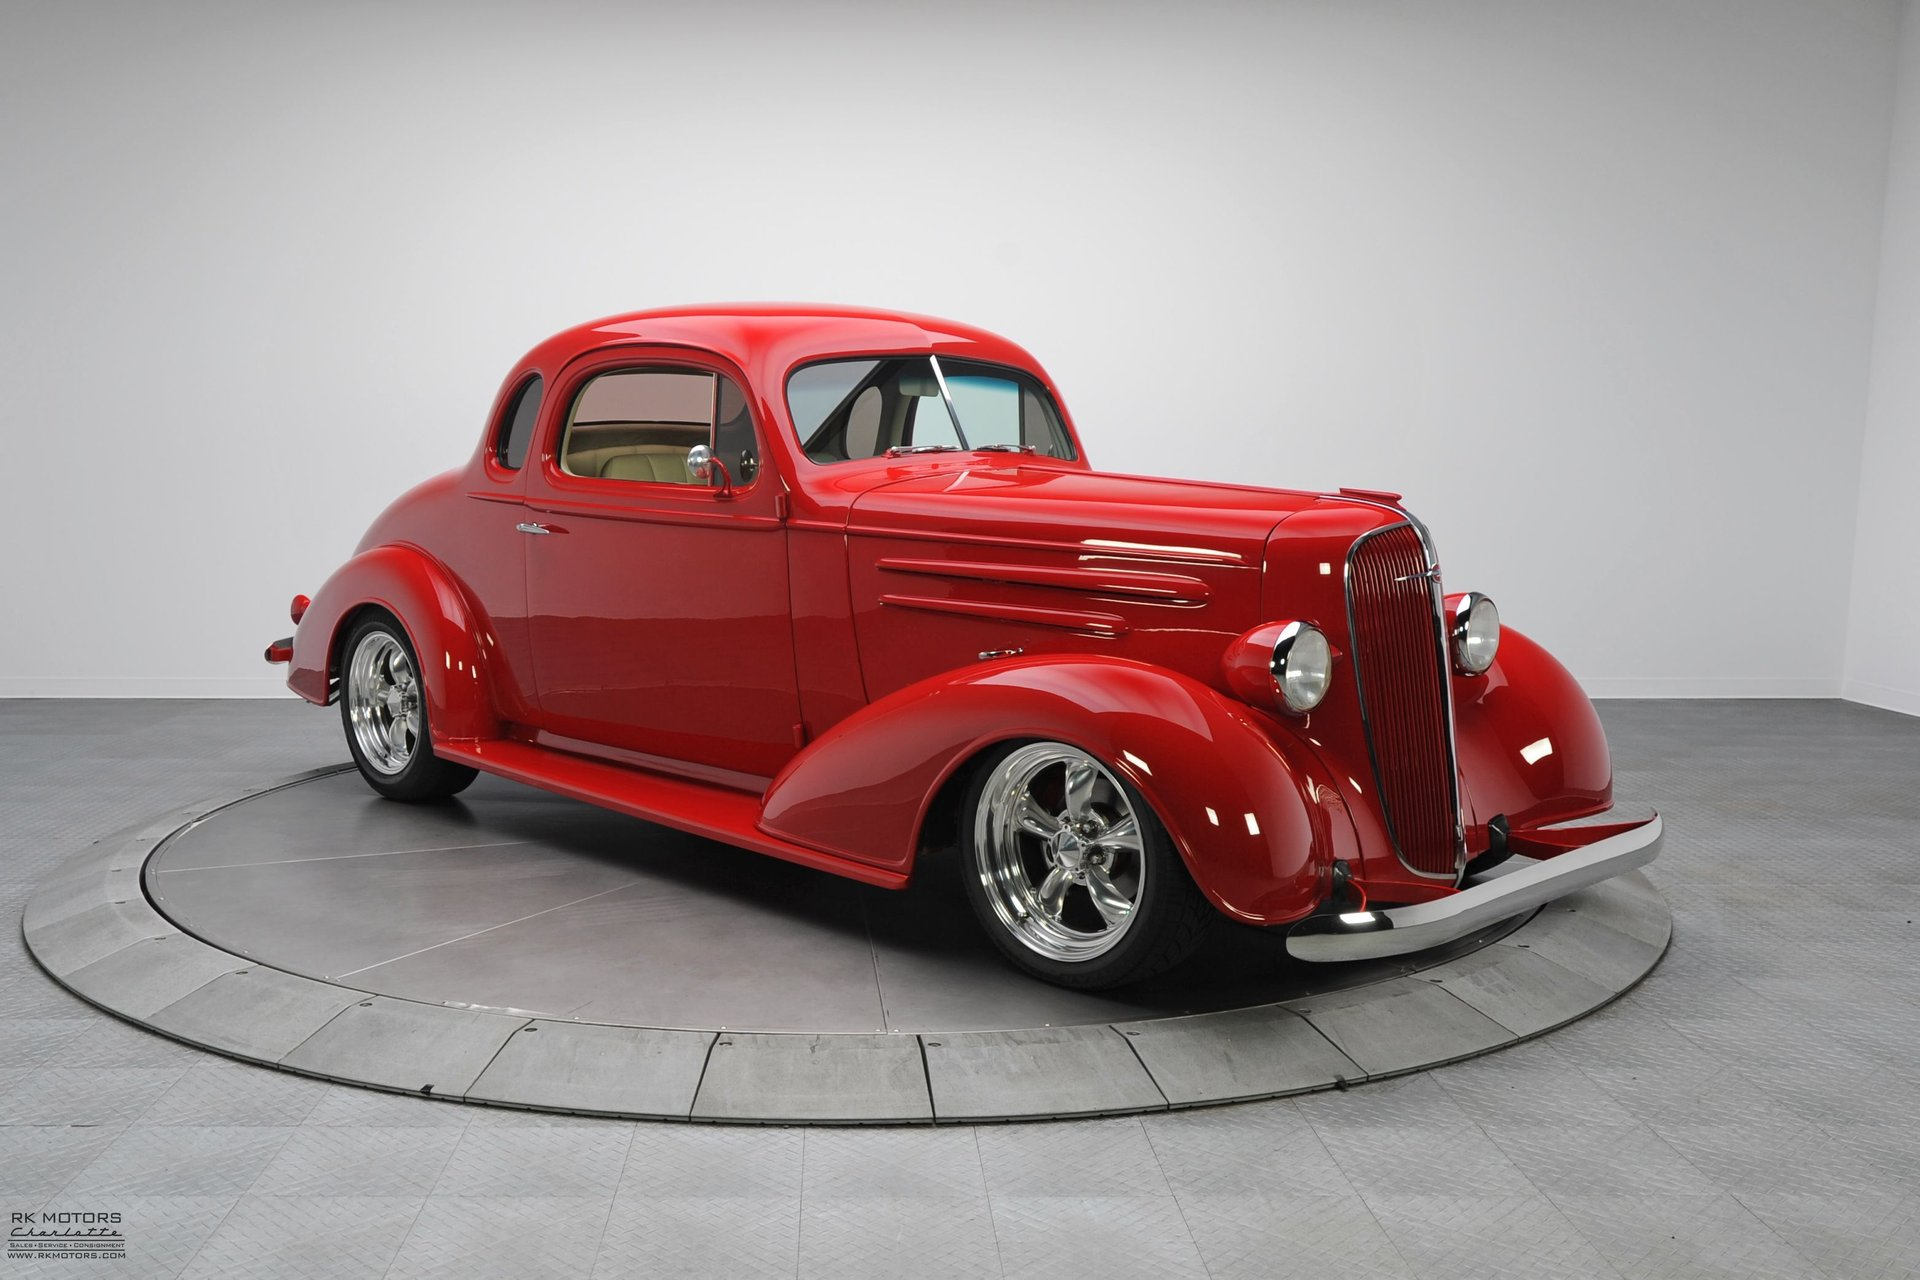 133309 1936 Chevrolet Coupe RK Motors Classic Cars for Sale